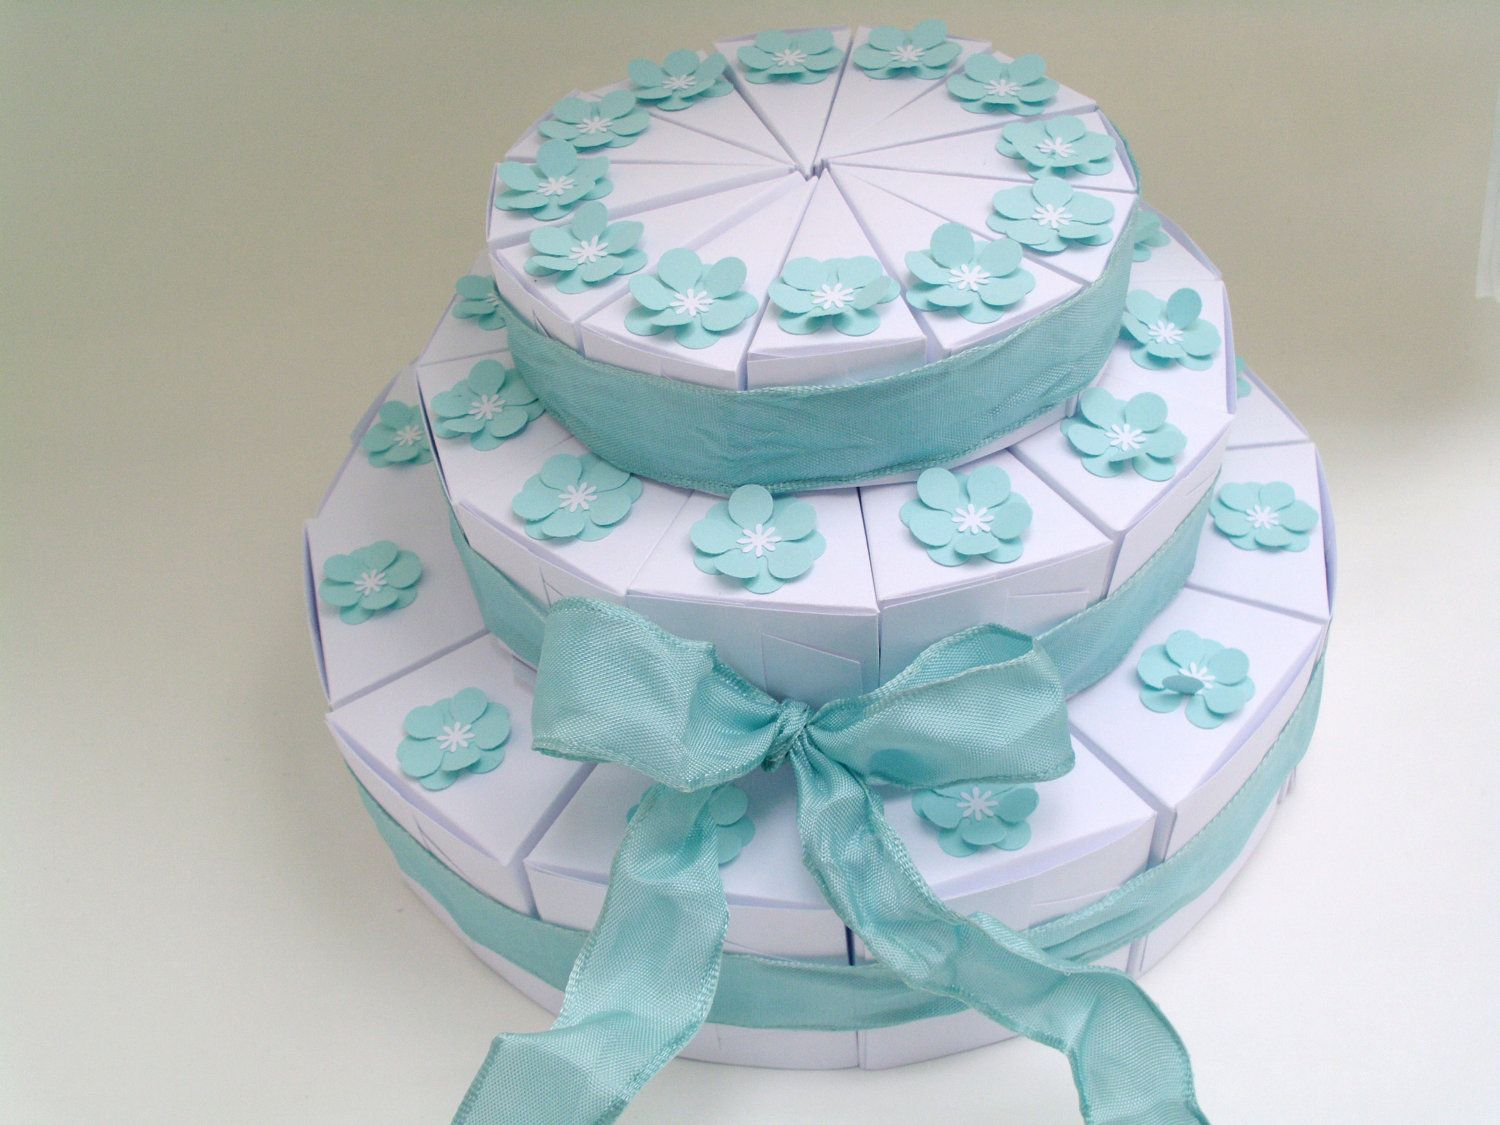 36 white or ivory 3tiered wedding favor slice cake boxes